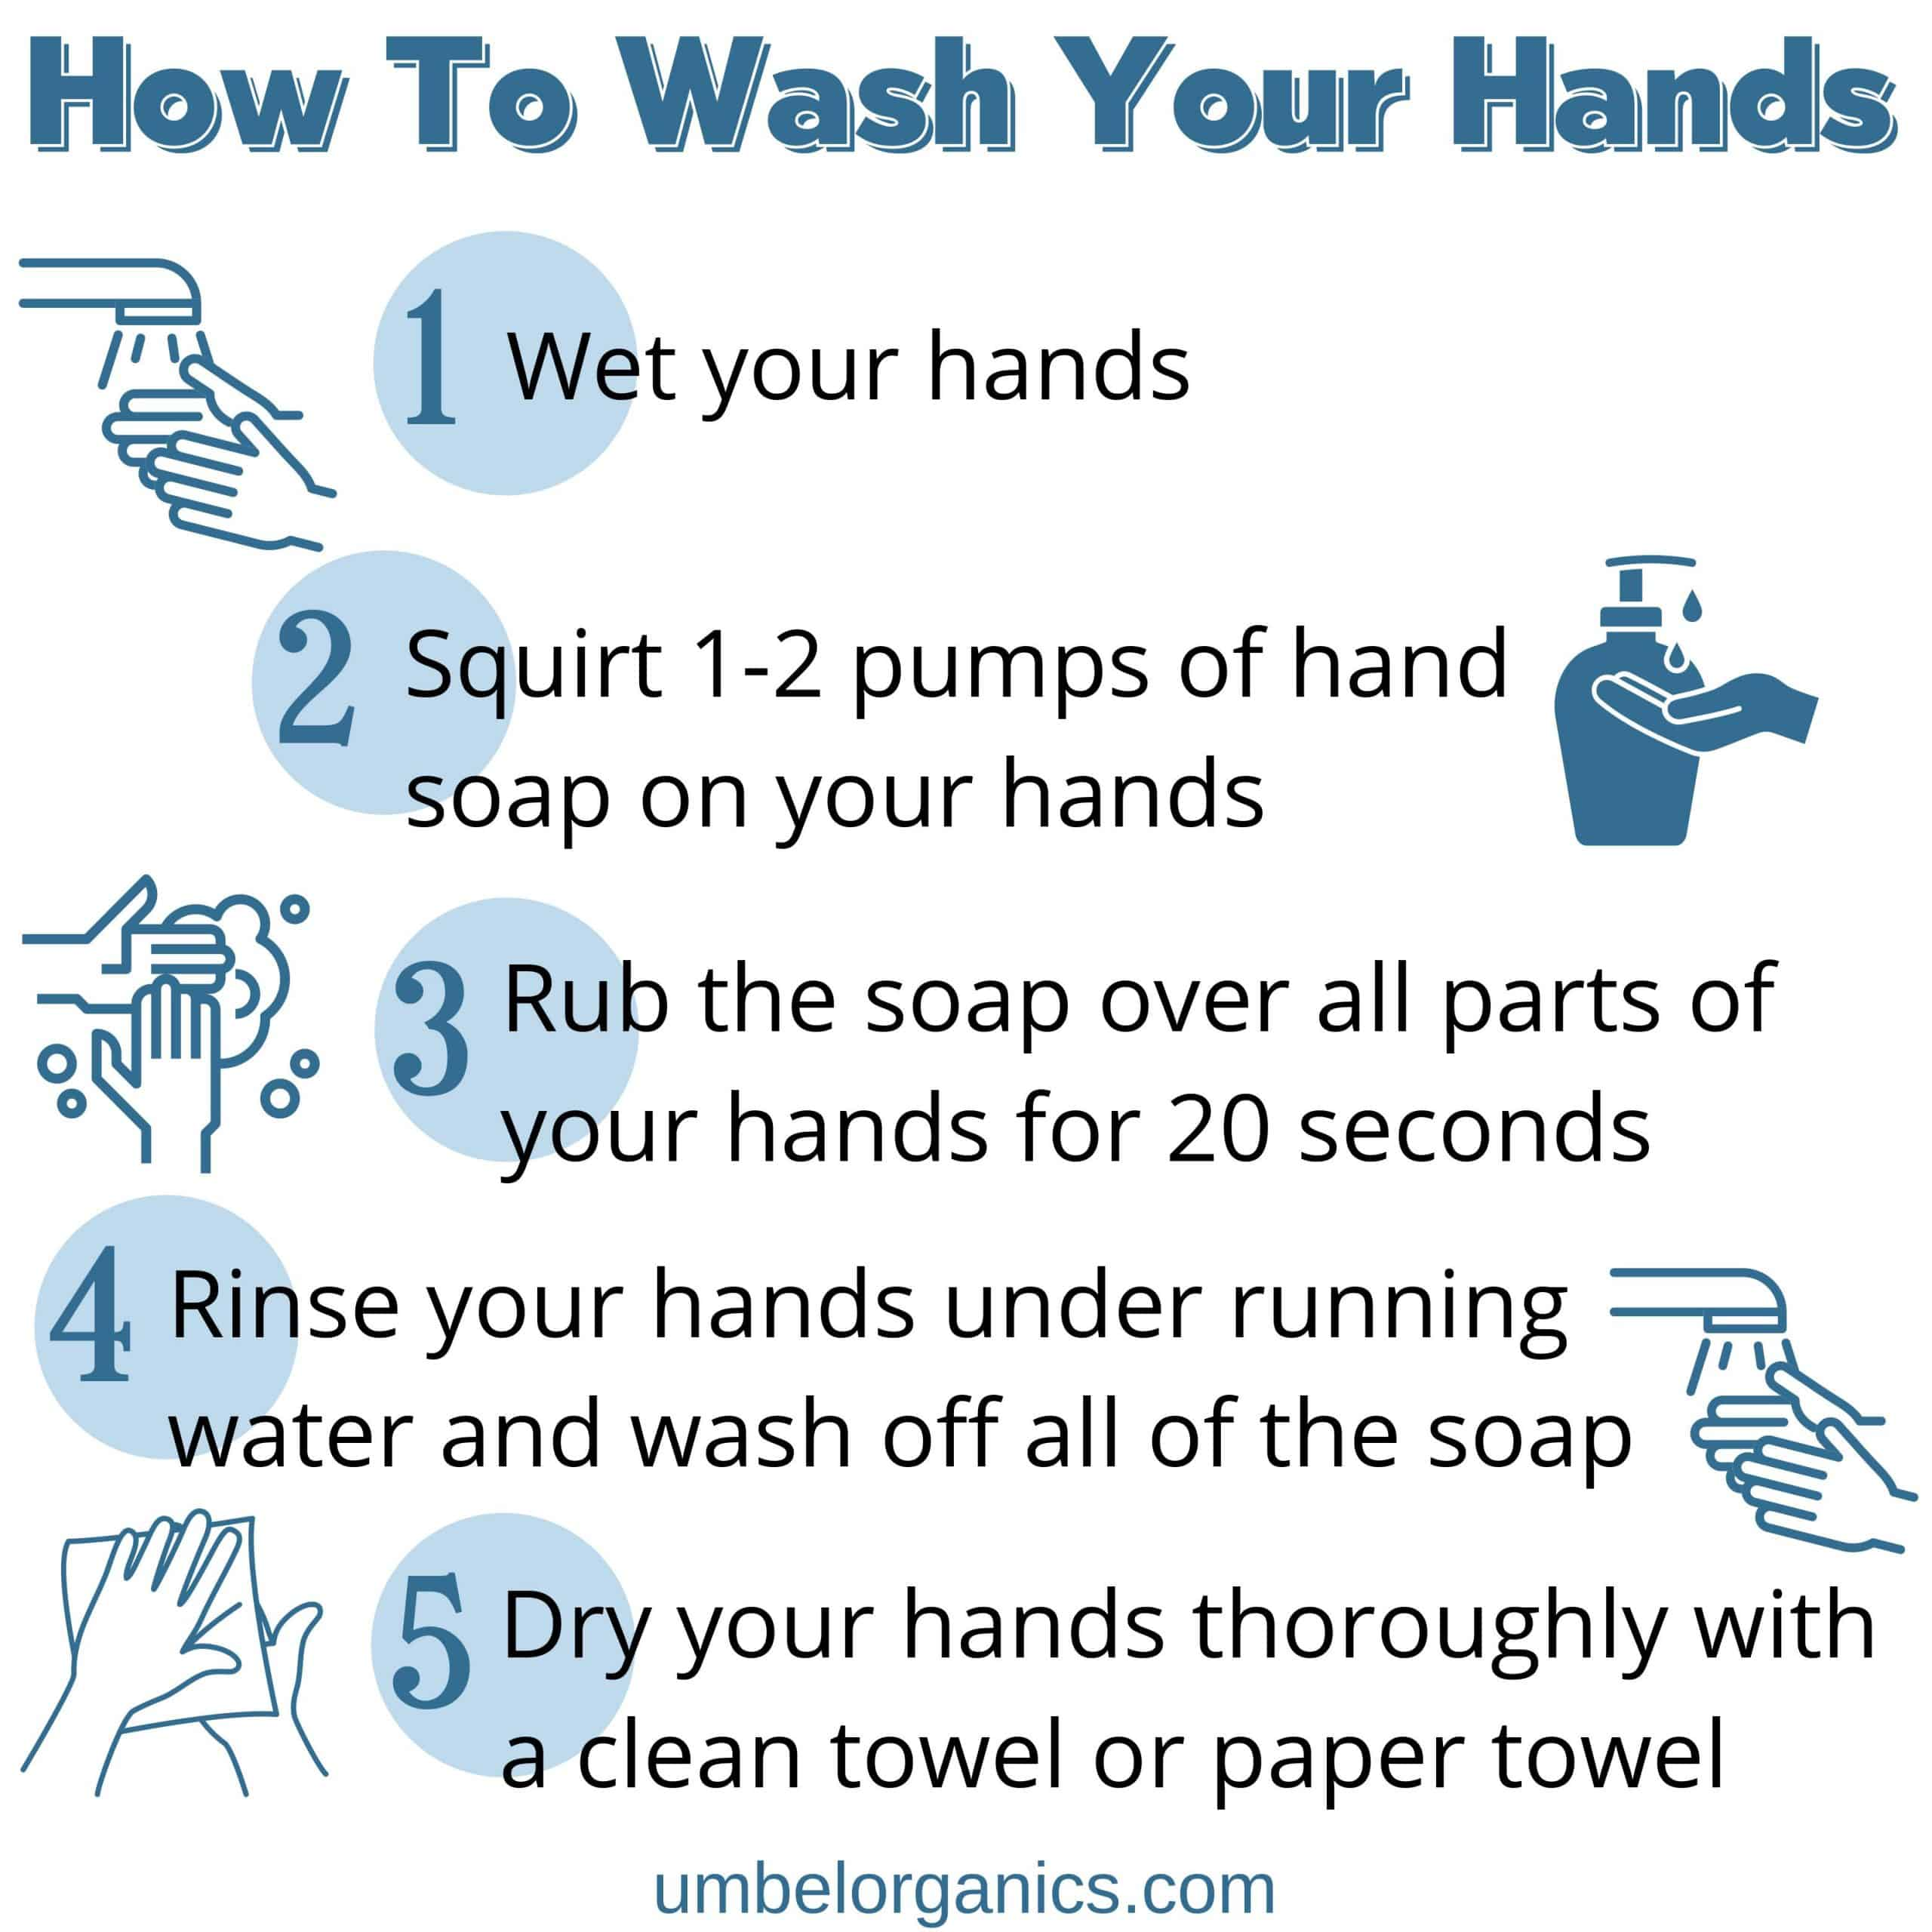 5 Steps to wash your hands